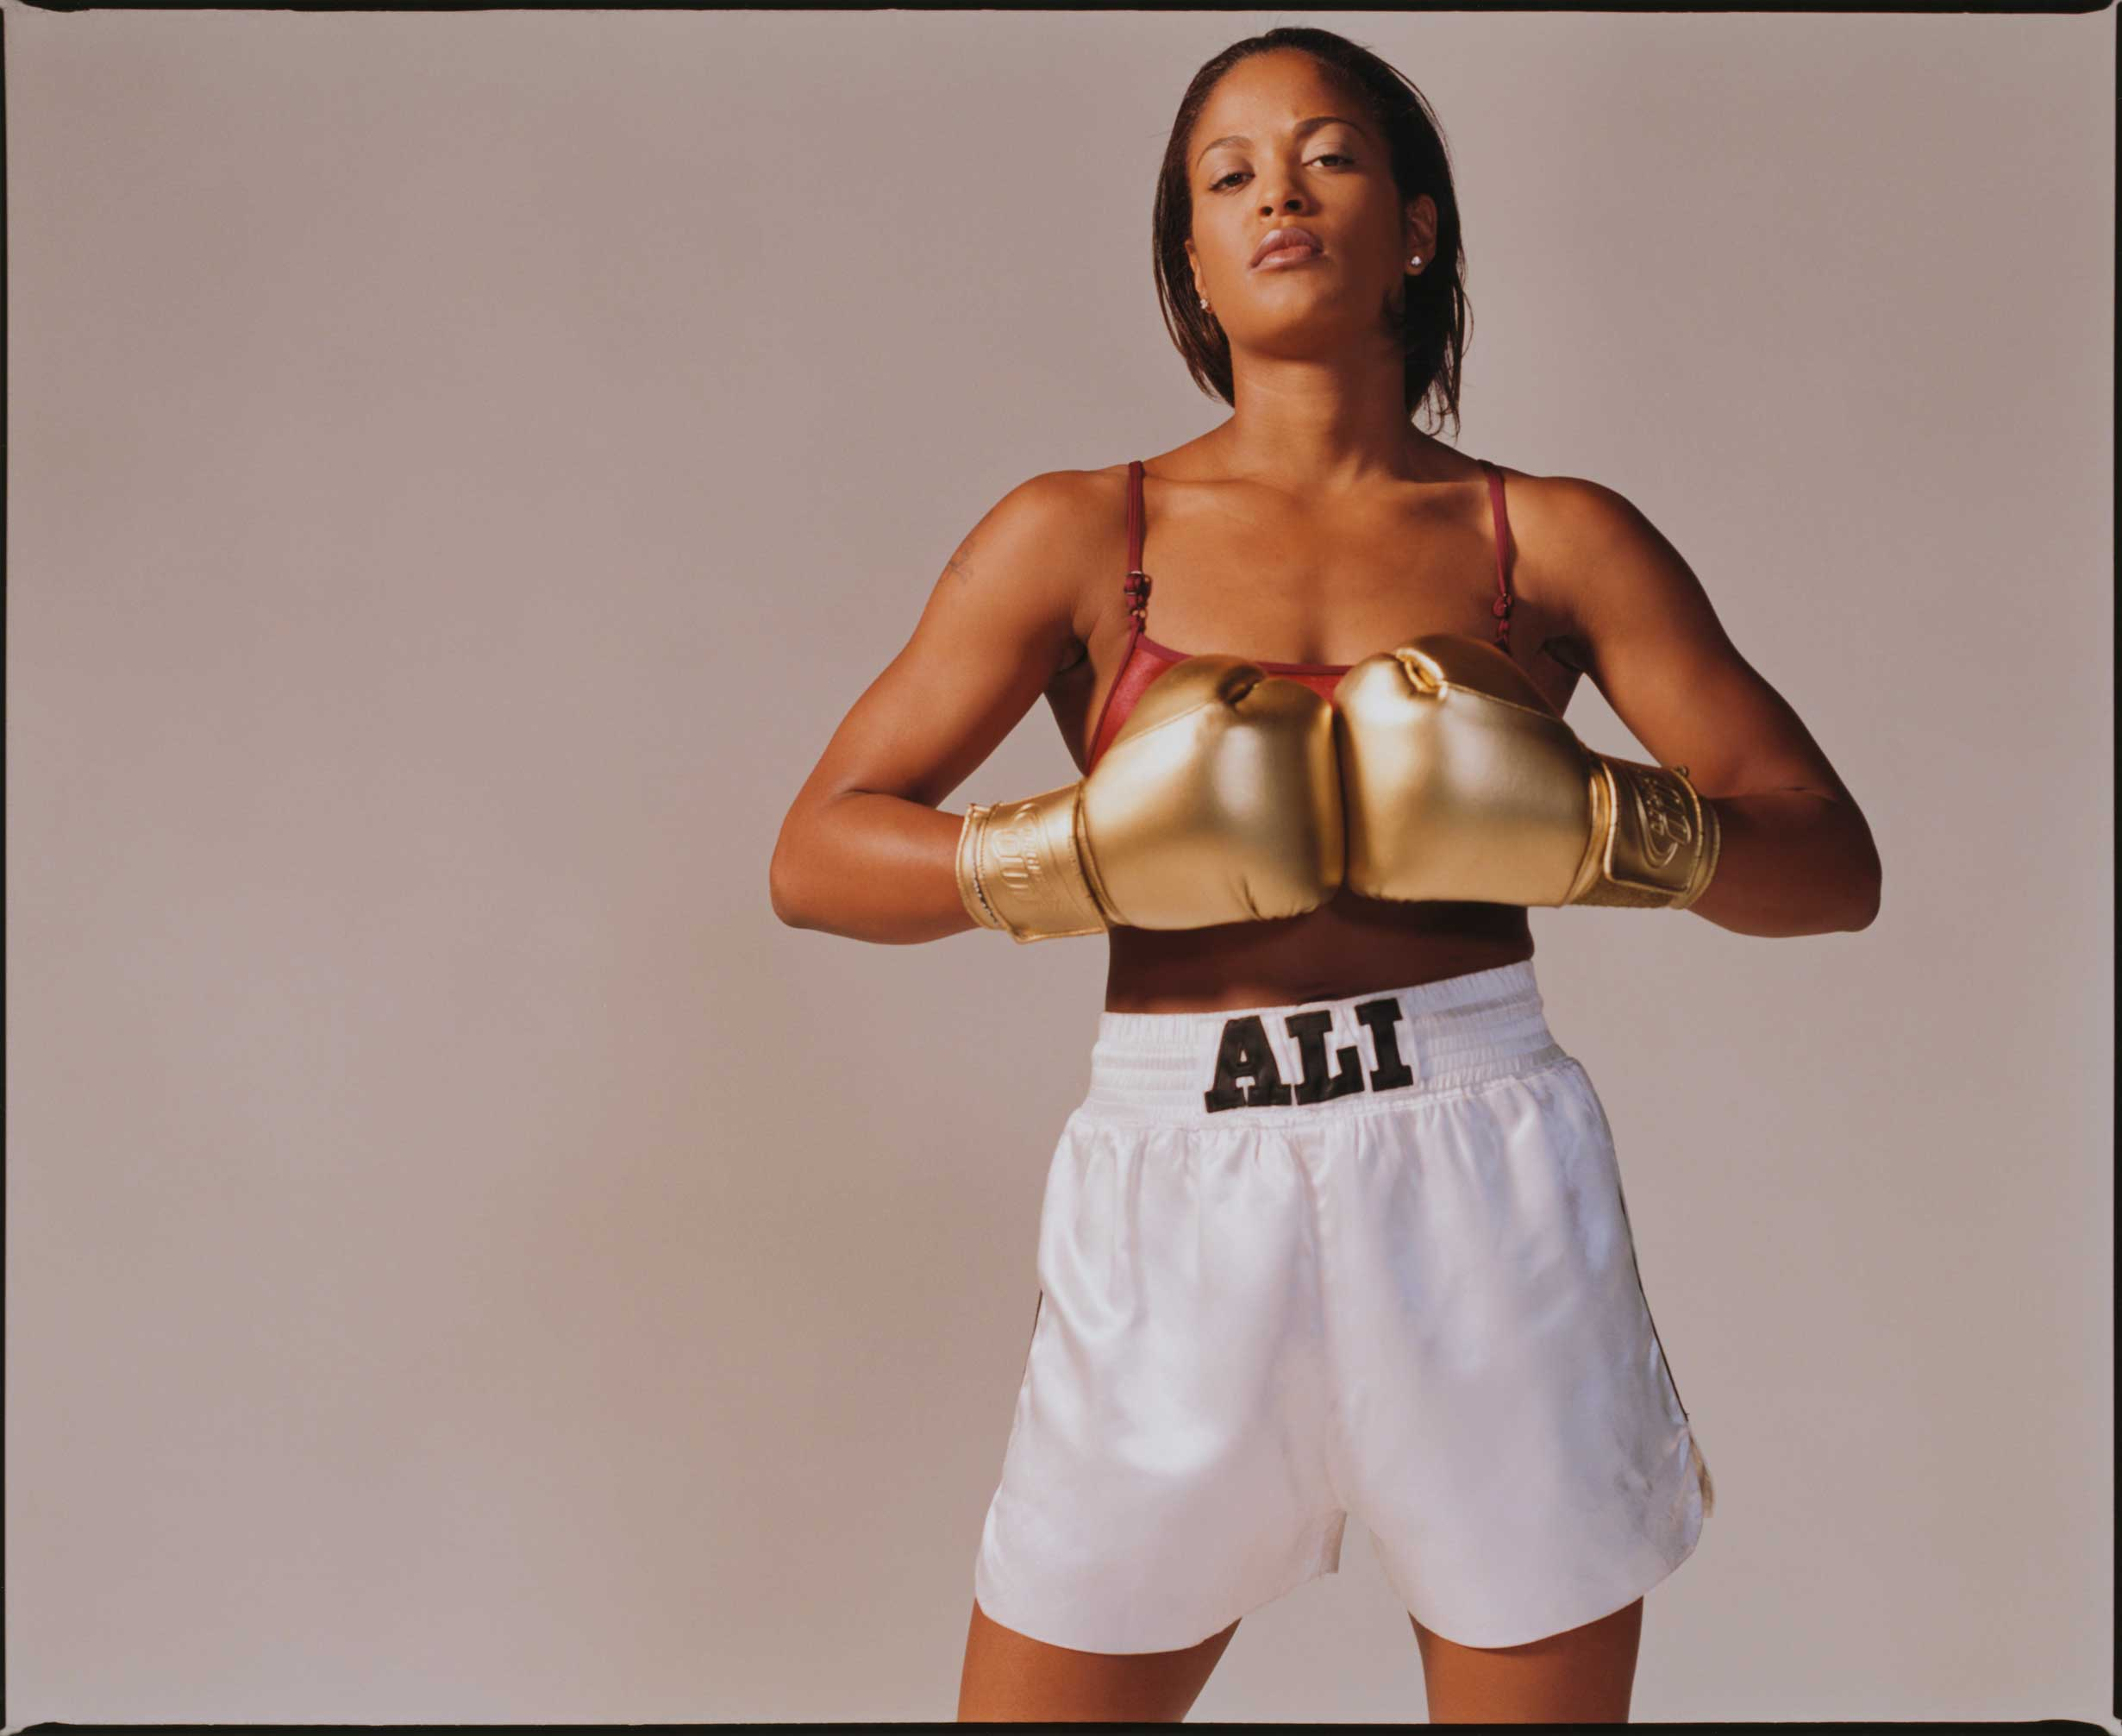 laila ali photo 26 of 98 pics, wallpaper - photo #211000 - theplace2